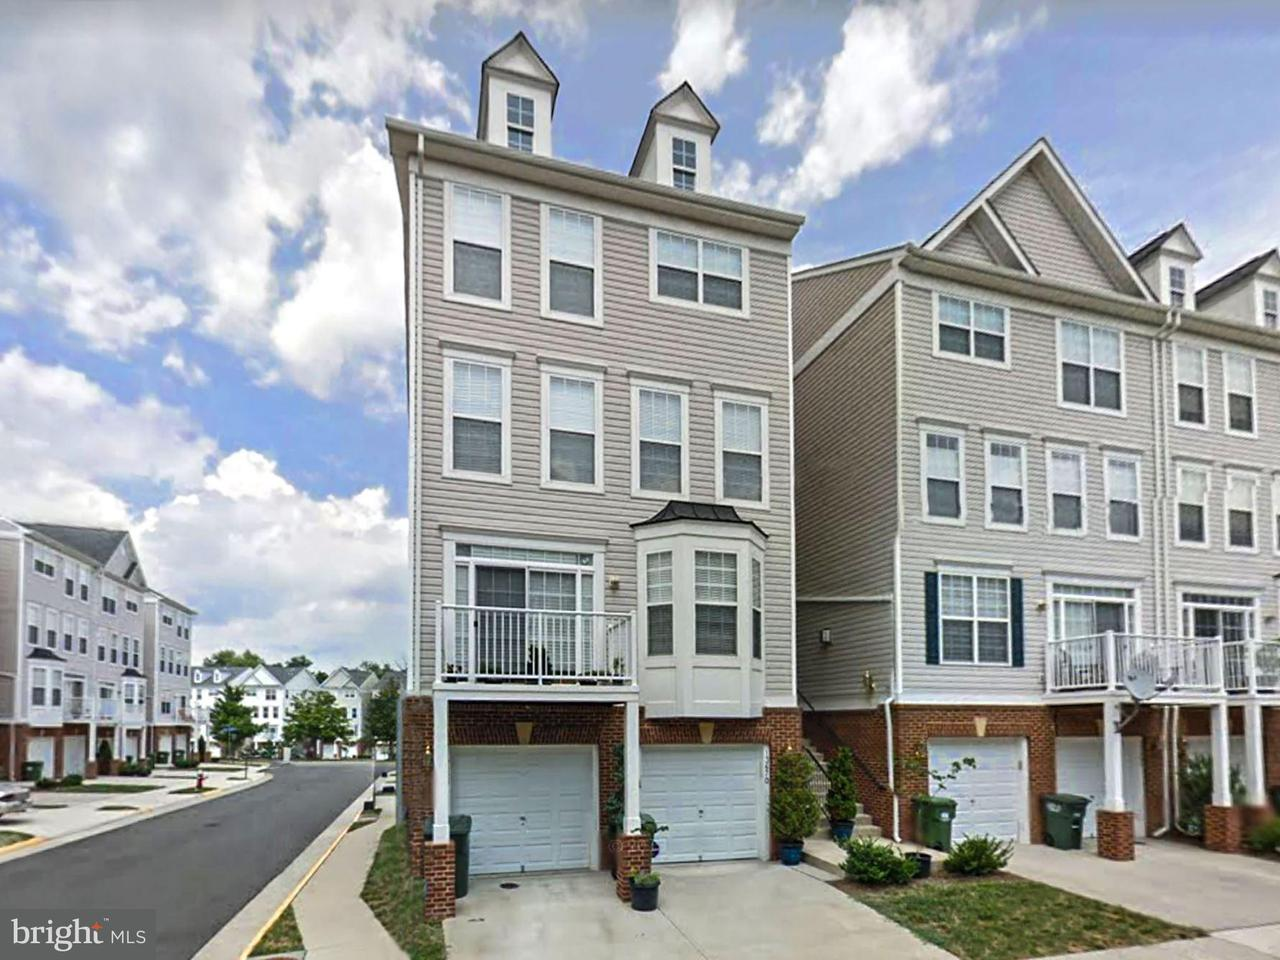 Other Residential for Rent at 13670 Venturi Ln #219 Herndon, Virginia 20171 United States